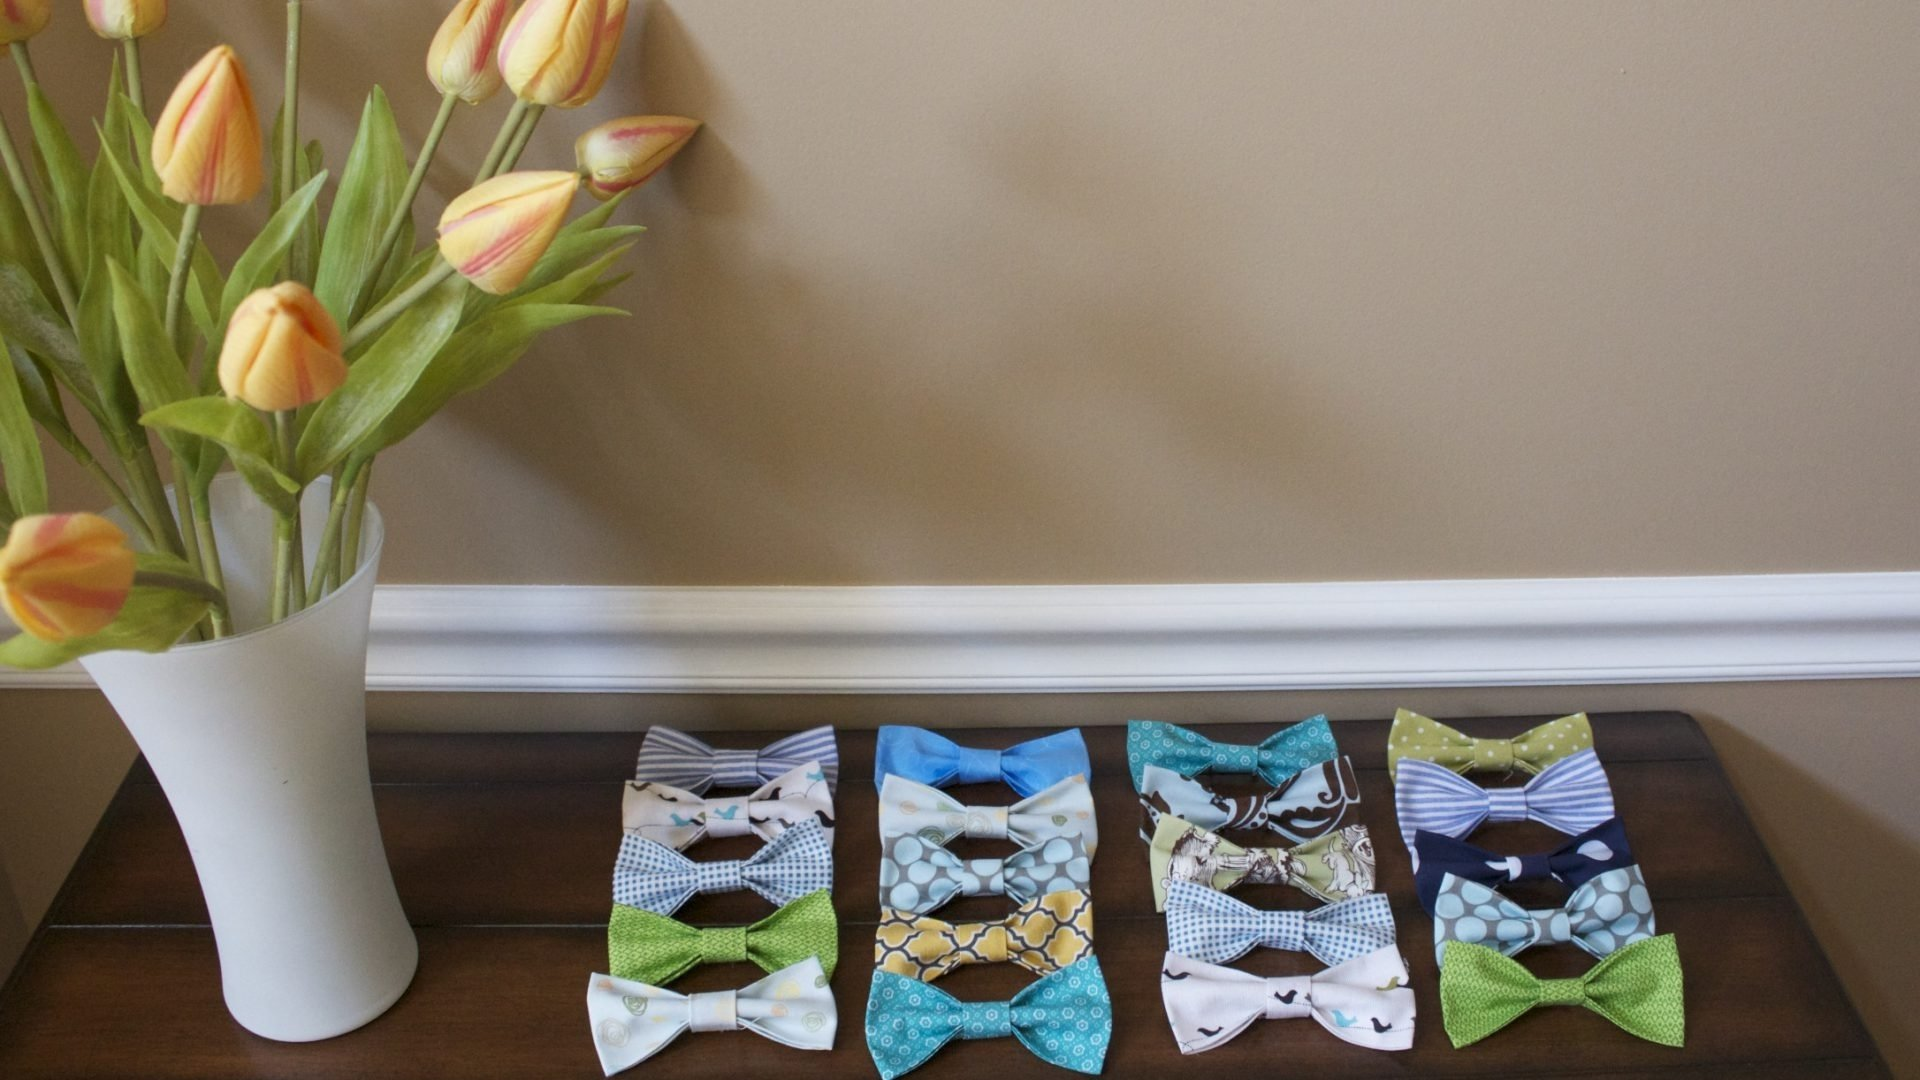 10 Cute Bow Tie Baby Shower Ideas bowie baby shower ideas breathtaking food favor bow tie and mustache 2020